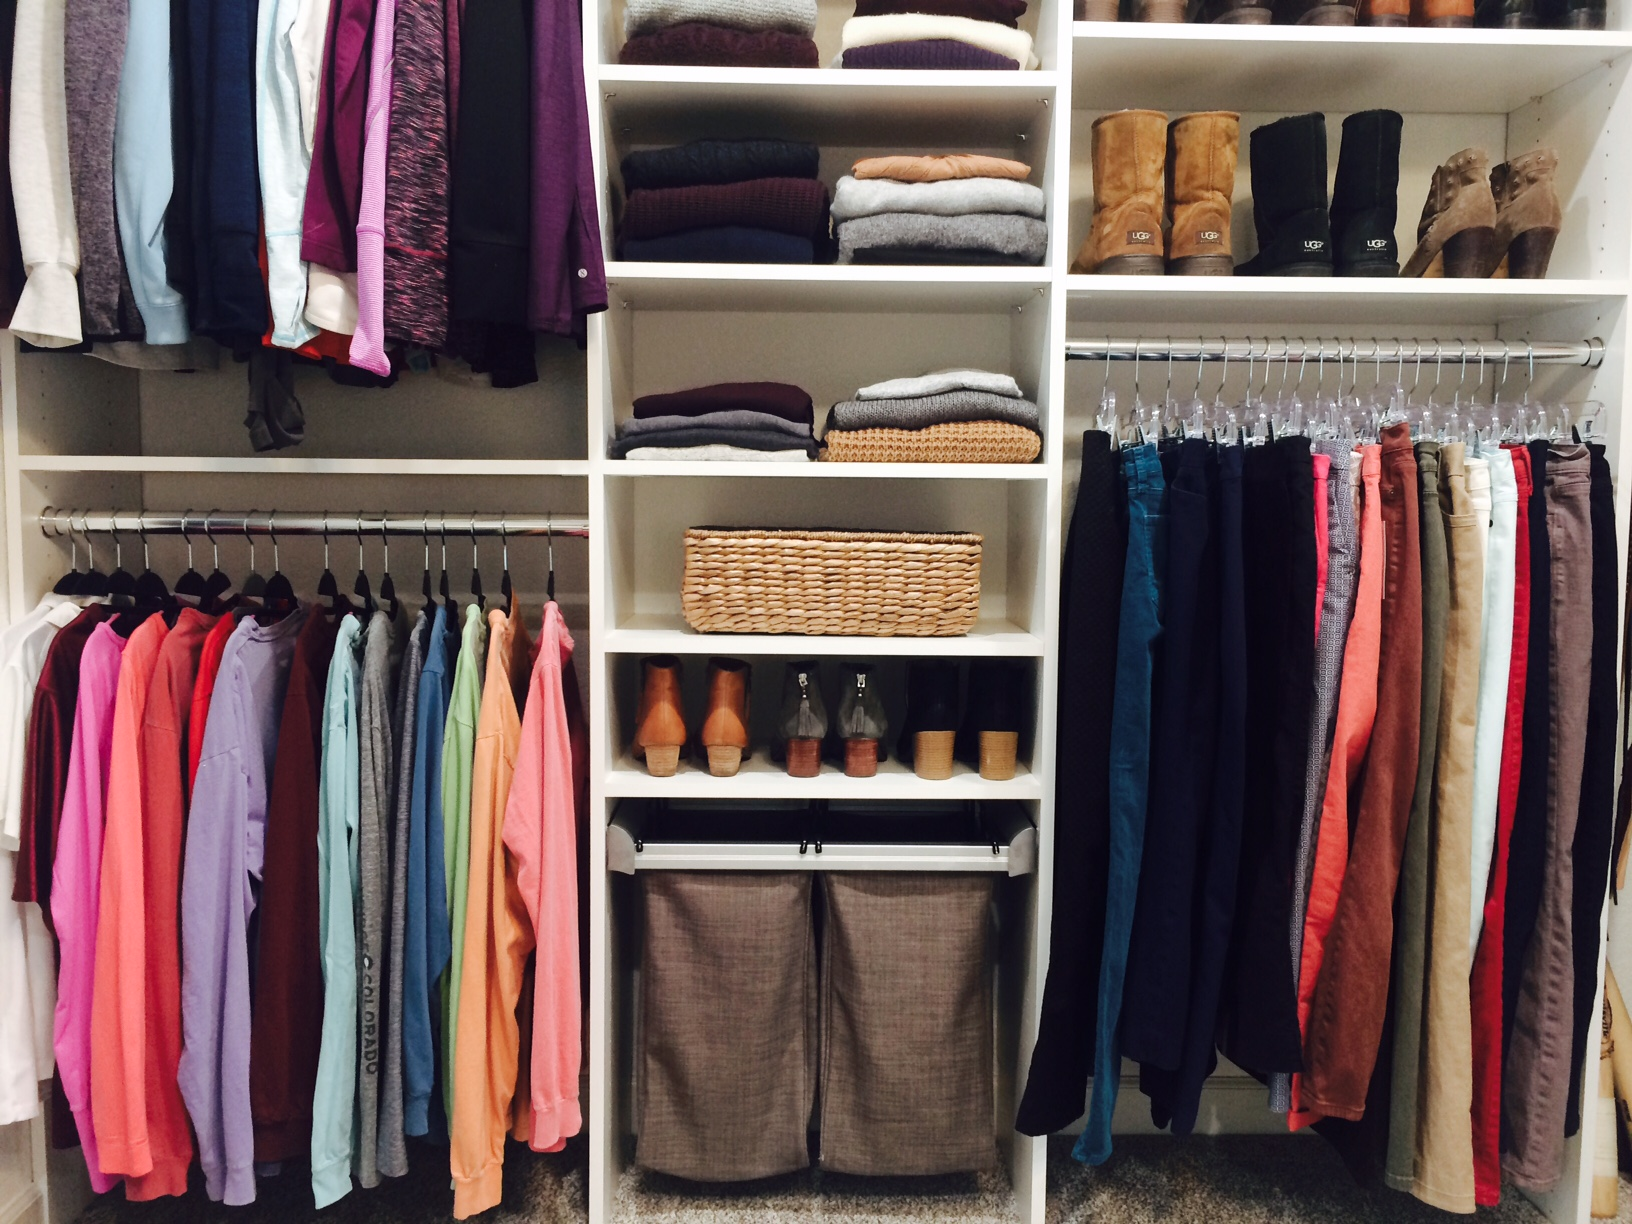 Generous hanging space and pullout laundry hampers make this custom closet easy to maintain.  Call Closets of Tulsa  for a FREE consultation and 3-D closet design:  918.609.0214